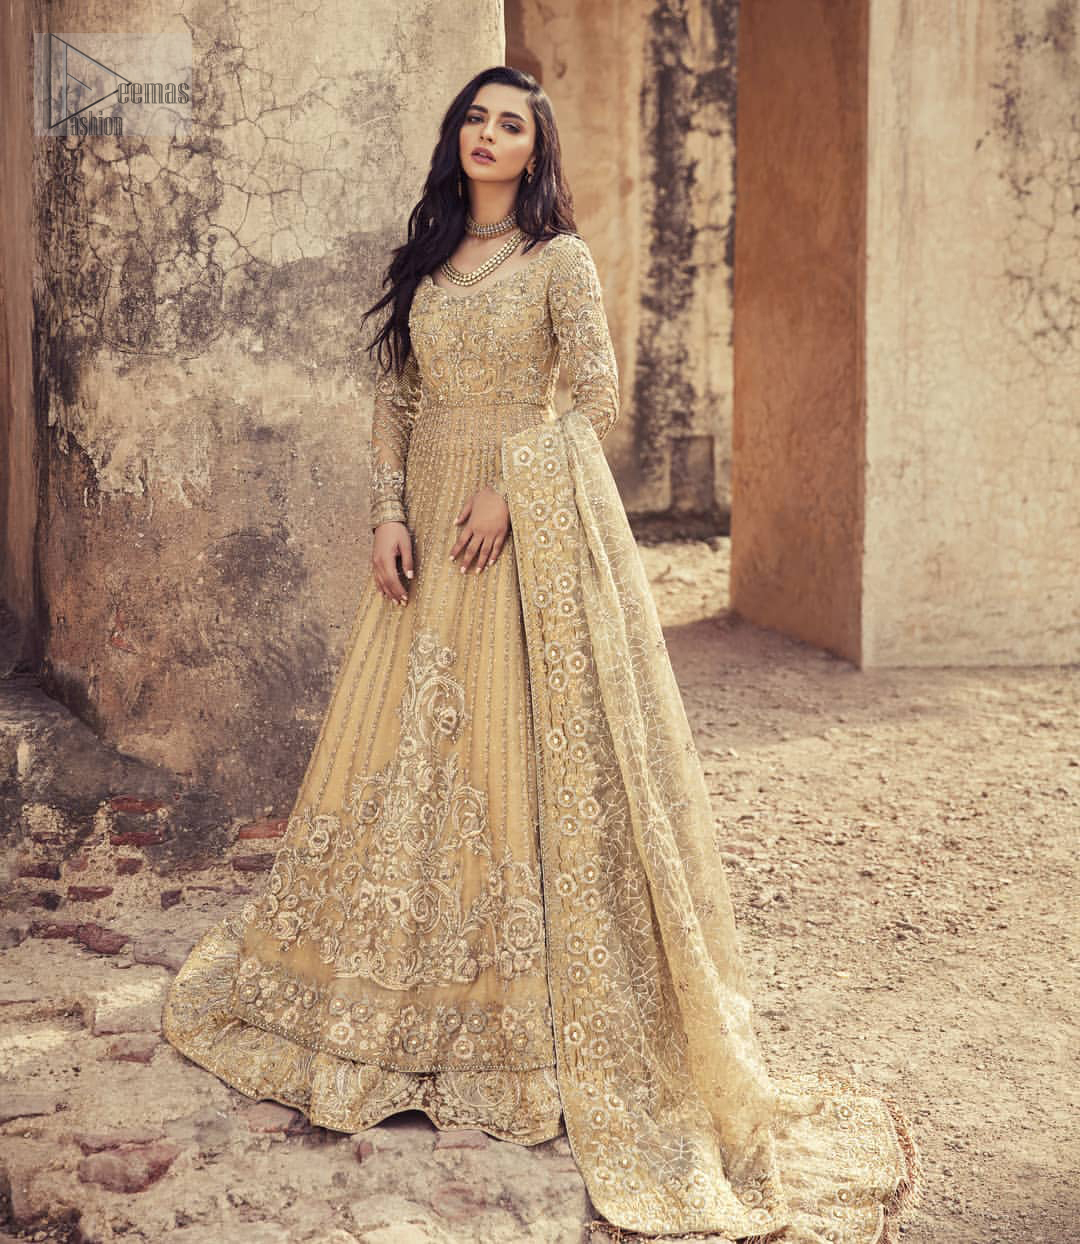 Captured in traditional silhouette, The bridal stands out due to its uniqueness and the perfect fusion of modern cut and traditional embroidery. It is highlighted with kora, dabka, tilla, sequins and pearls. Pishwas is enhanced with zardosi work on bodice, vertical lines and the daaman is emphasized with intricate zardosi details that gives perfect ending to this outfit. A handcrafted pale gold lehenga finished with thick embellished borders completes the look. The outfit is coordinated with chiffon dupatta with hand embroidered borders on all four sides and geometric patterns on the ground.